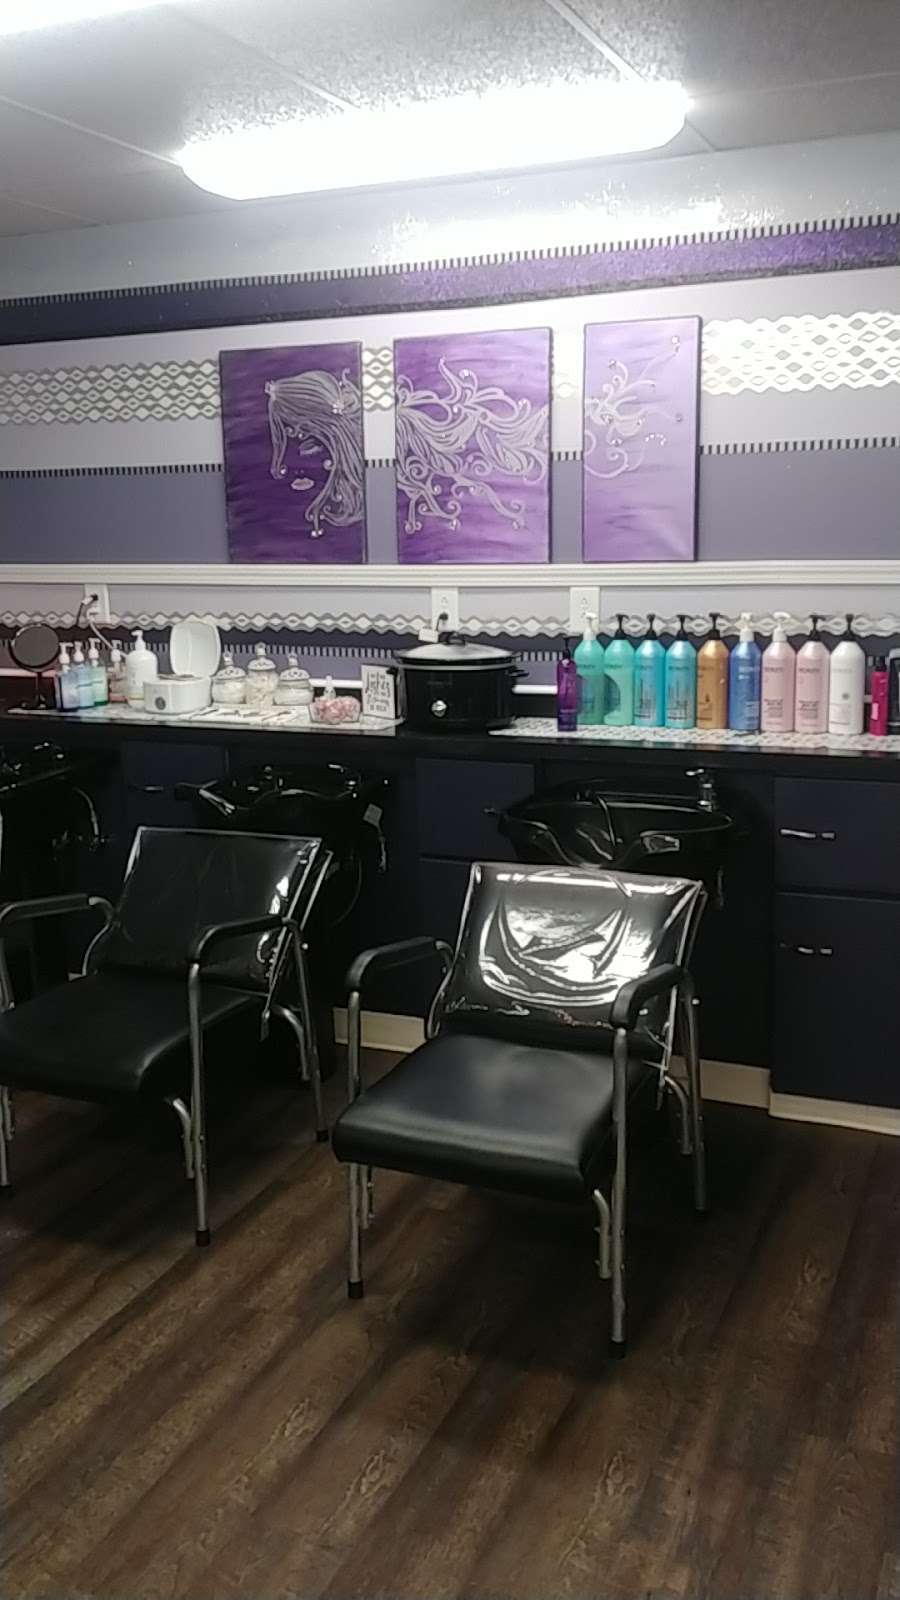 Salon 715 - hair care  | Photo 9 of 10 | Address: 715 N A St, Elwood, IN 46036, USA | Phone: (765) 552-9247